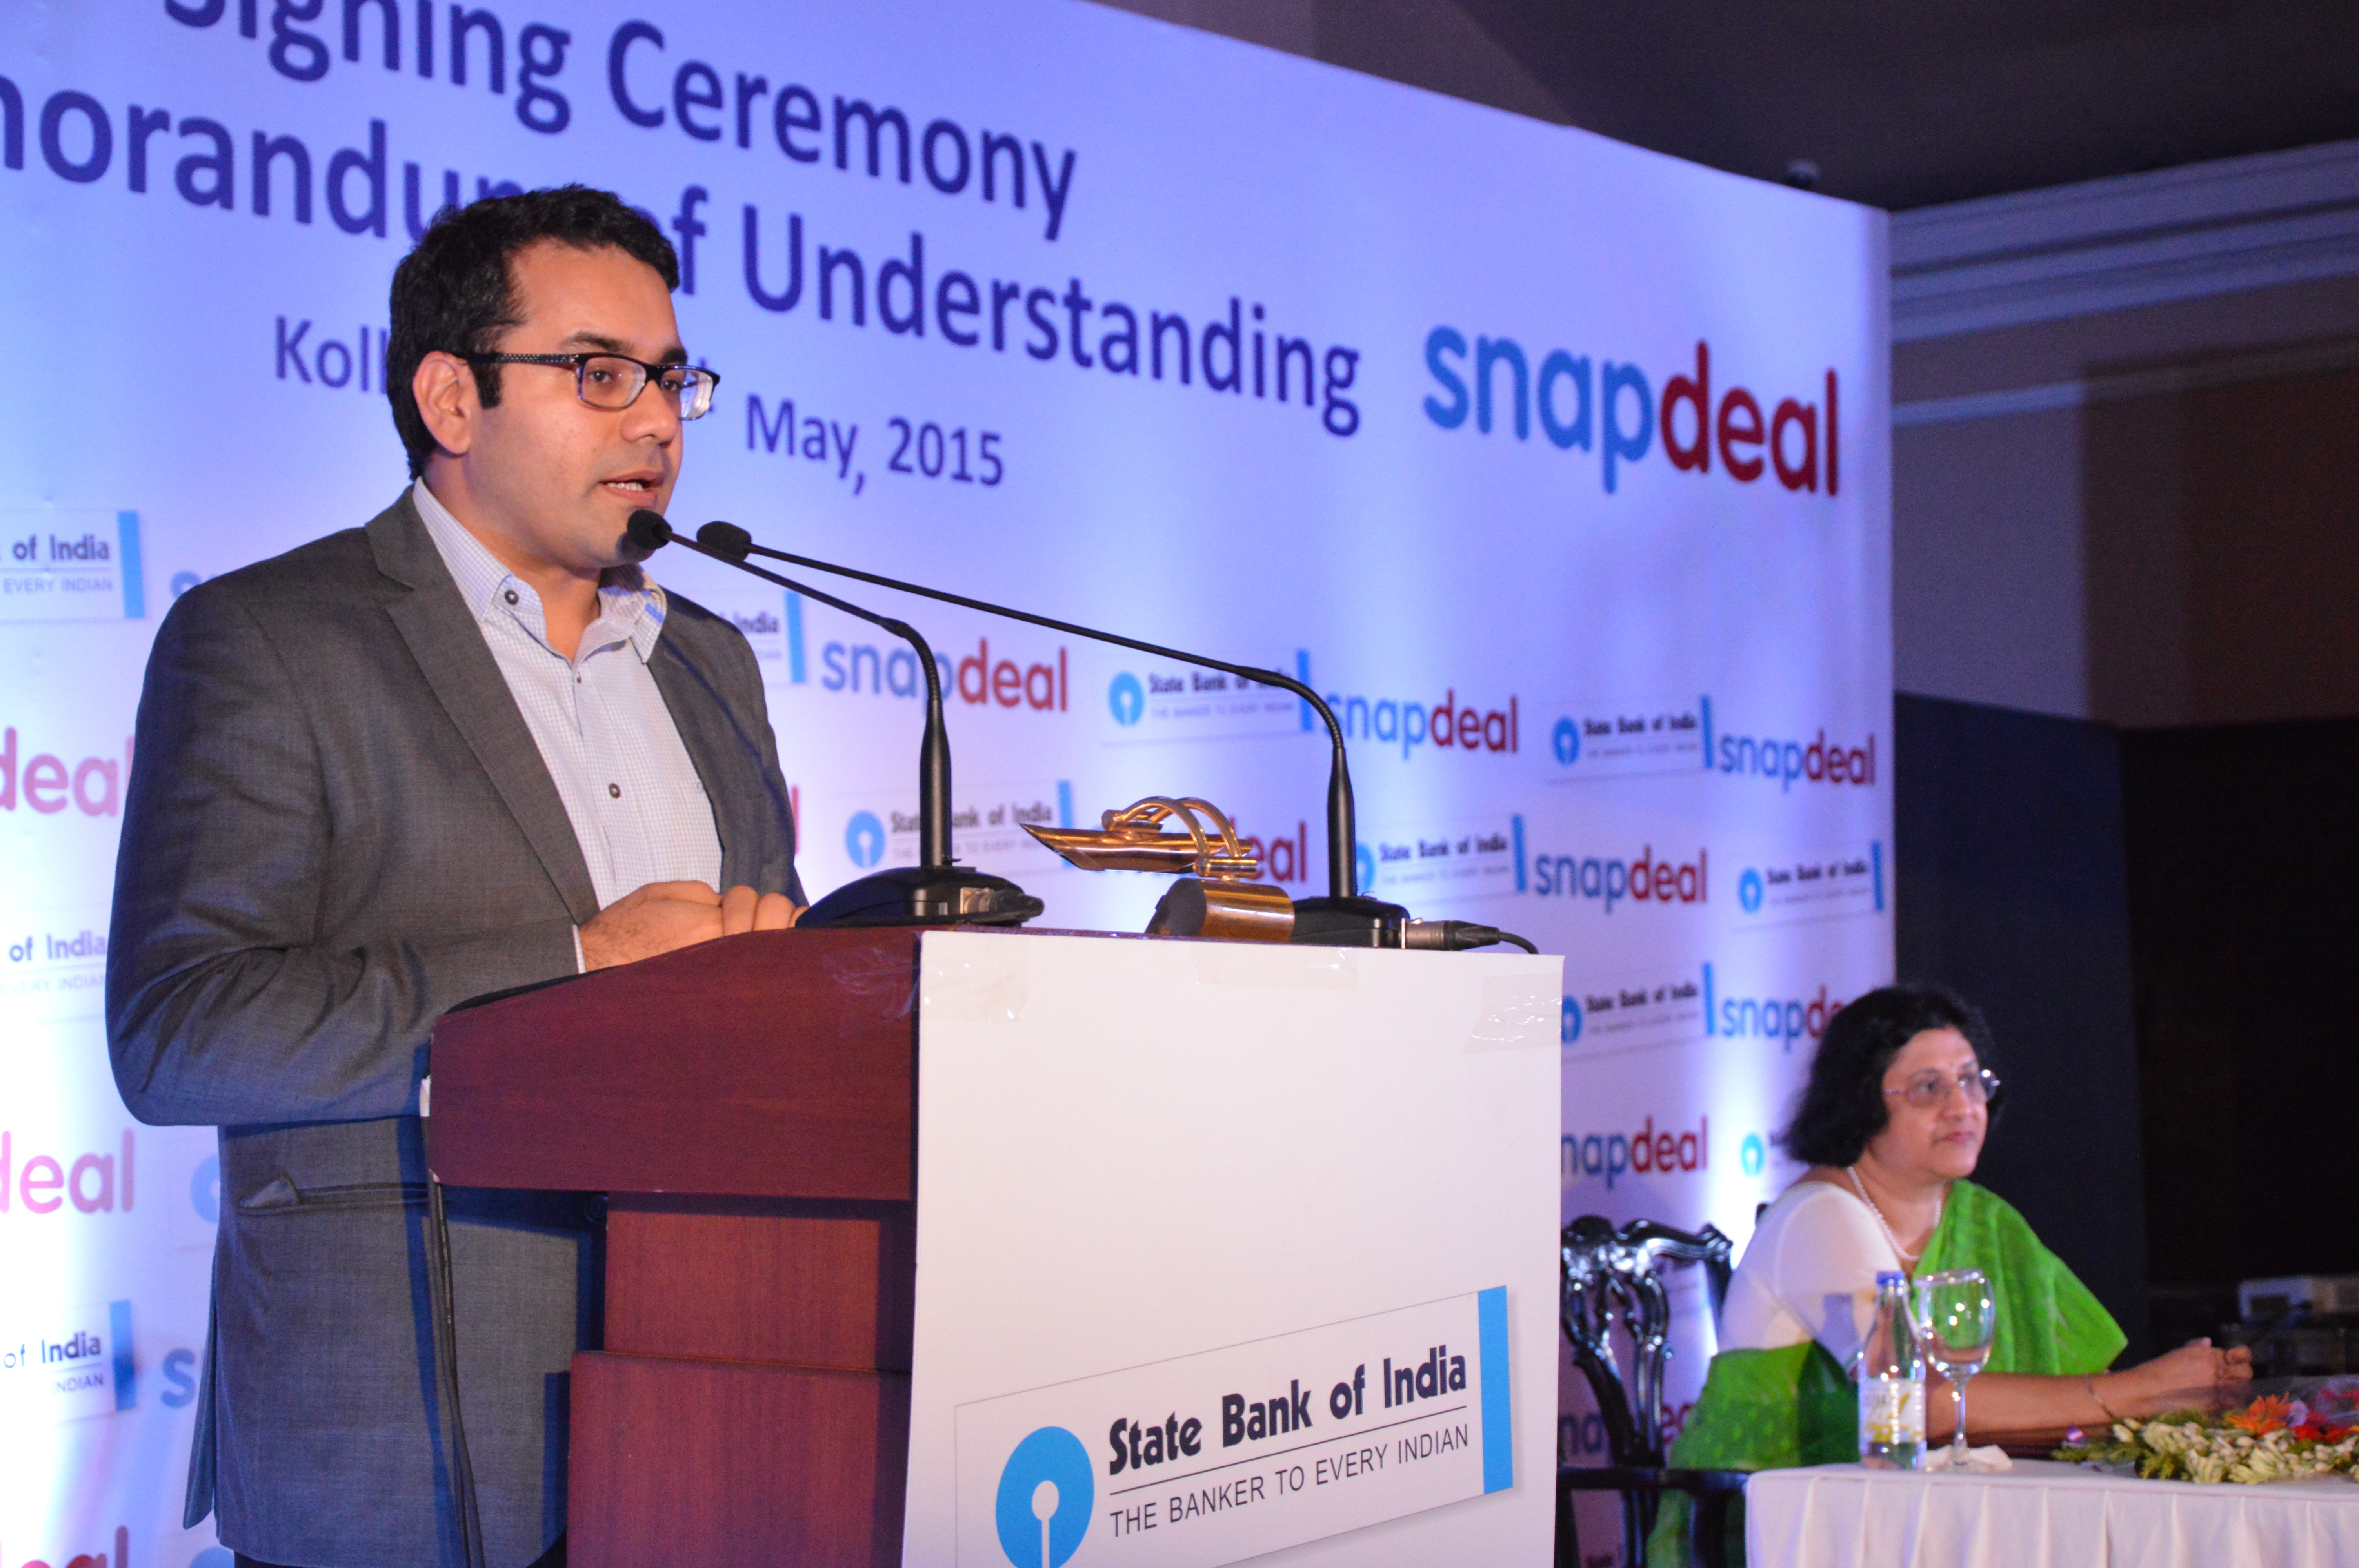 India's Snapdeal to Cut 600 Staff, Founders Forego Salary